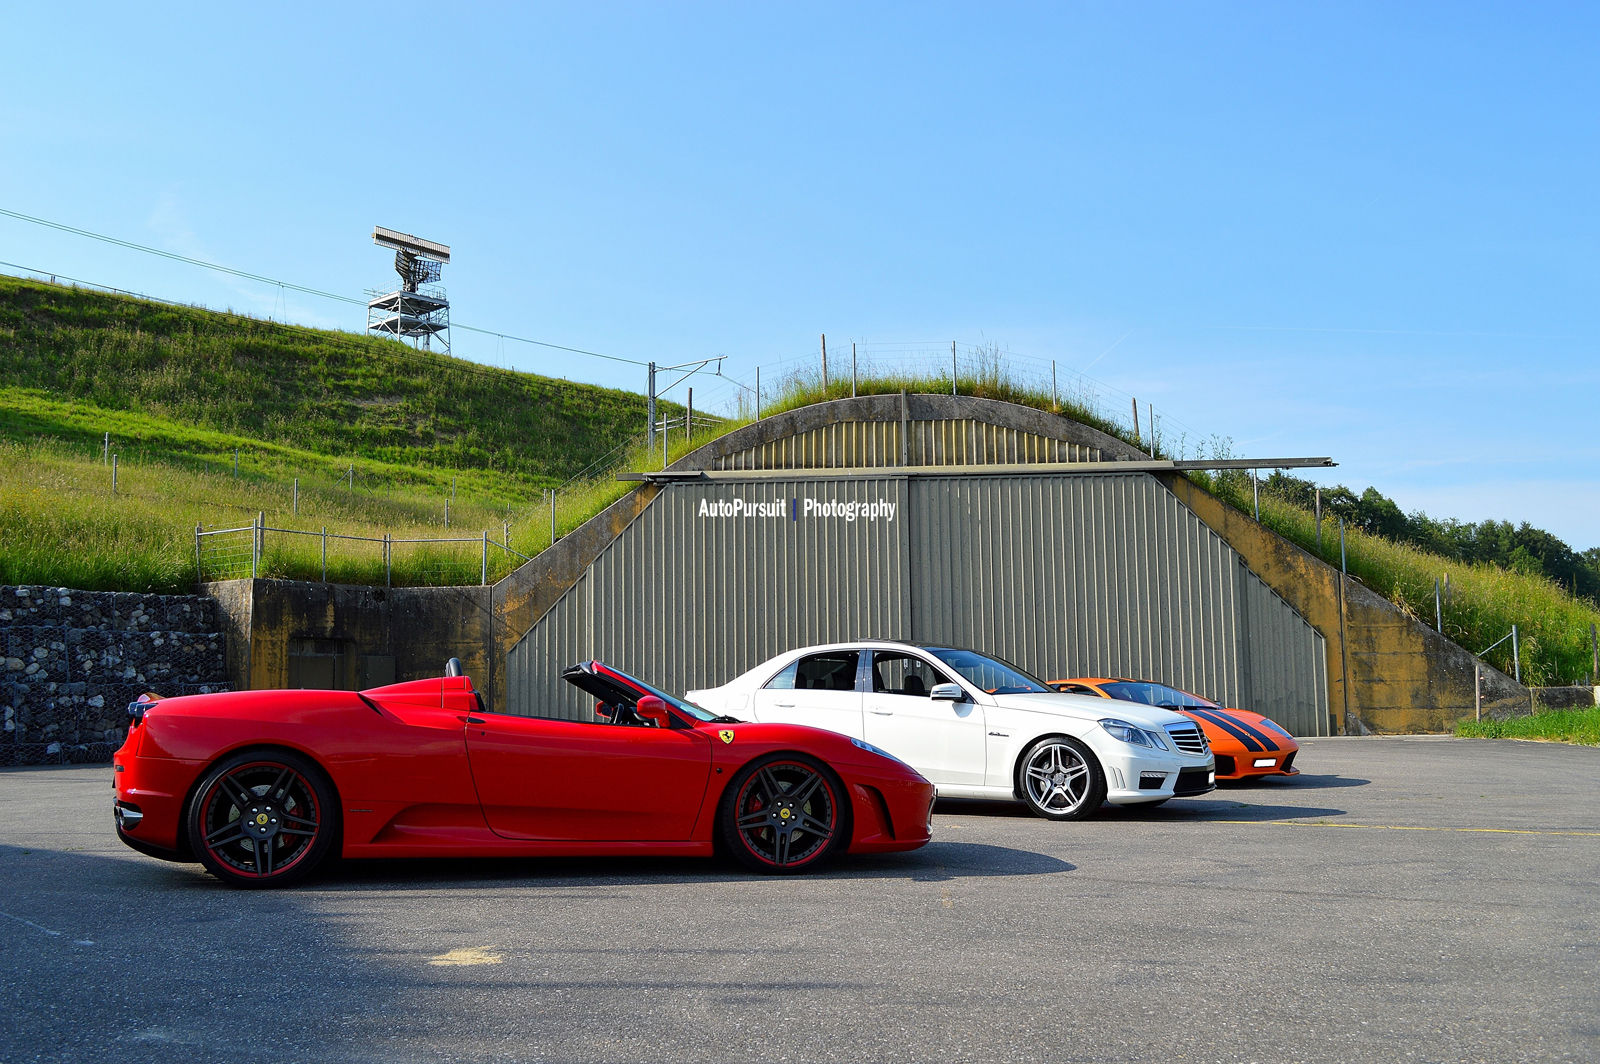 Photoshoot: heading out with three brutal cars